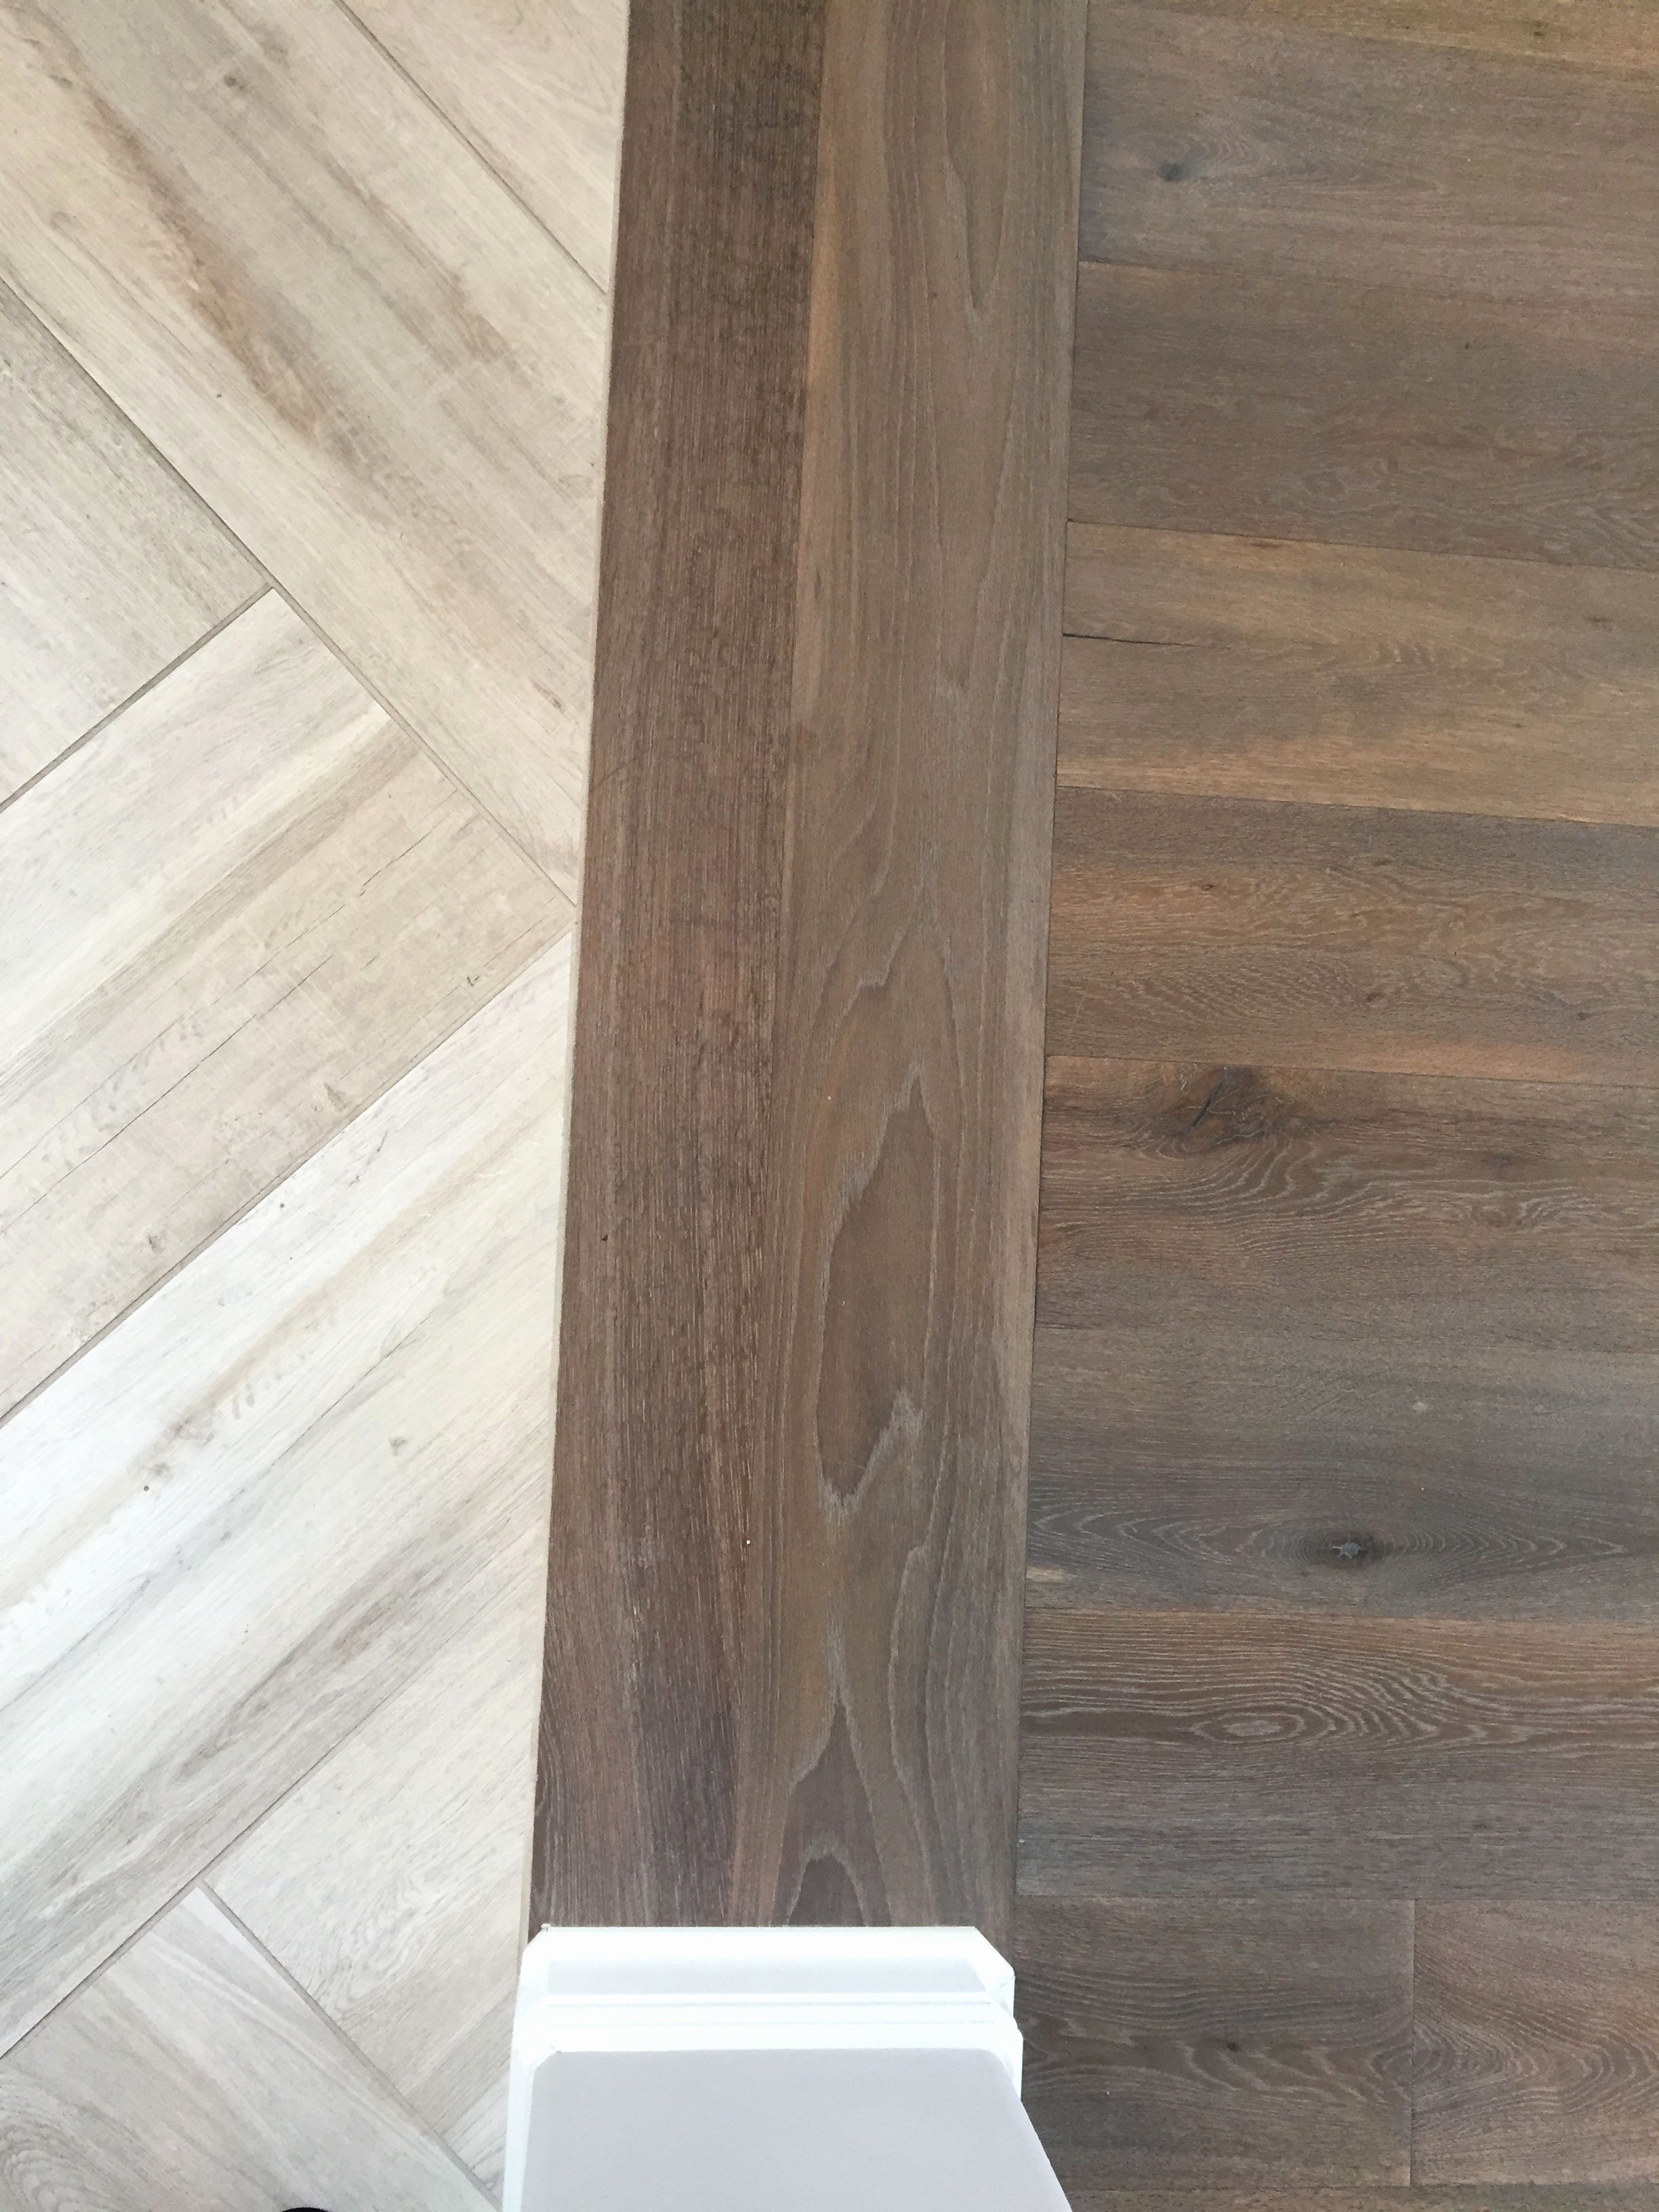 How Long Does Refinishing Hardwood Floors Take Of Refinish Hardwood Floors Diy 18 Luxury How to Sand Hardwood Floors Regarding Refinish Hardwood Floors Diy 18 Luxury How to Sand Hardwood Floors Stock Dizpos